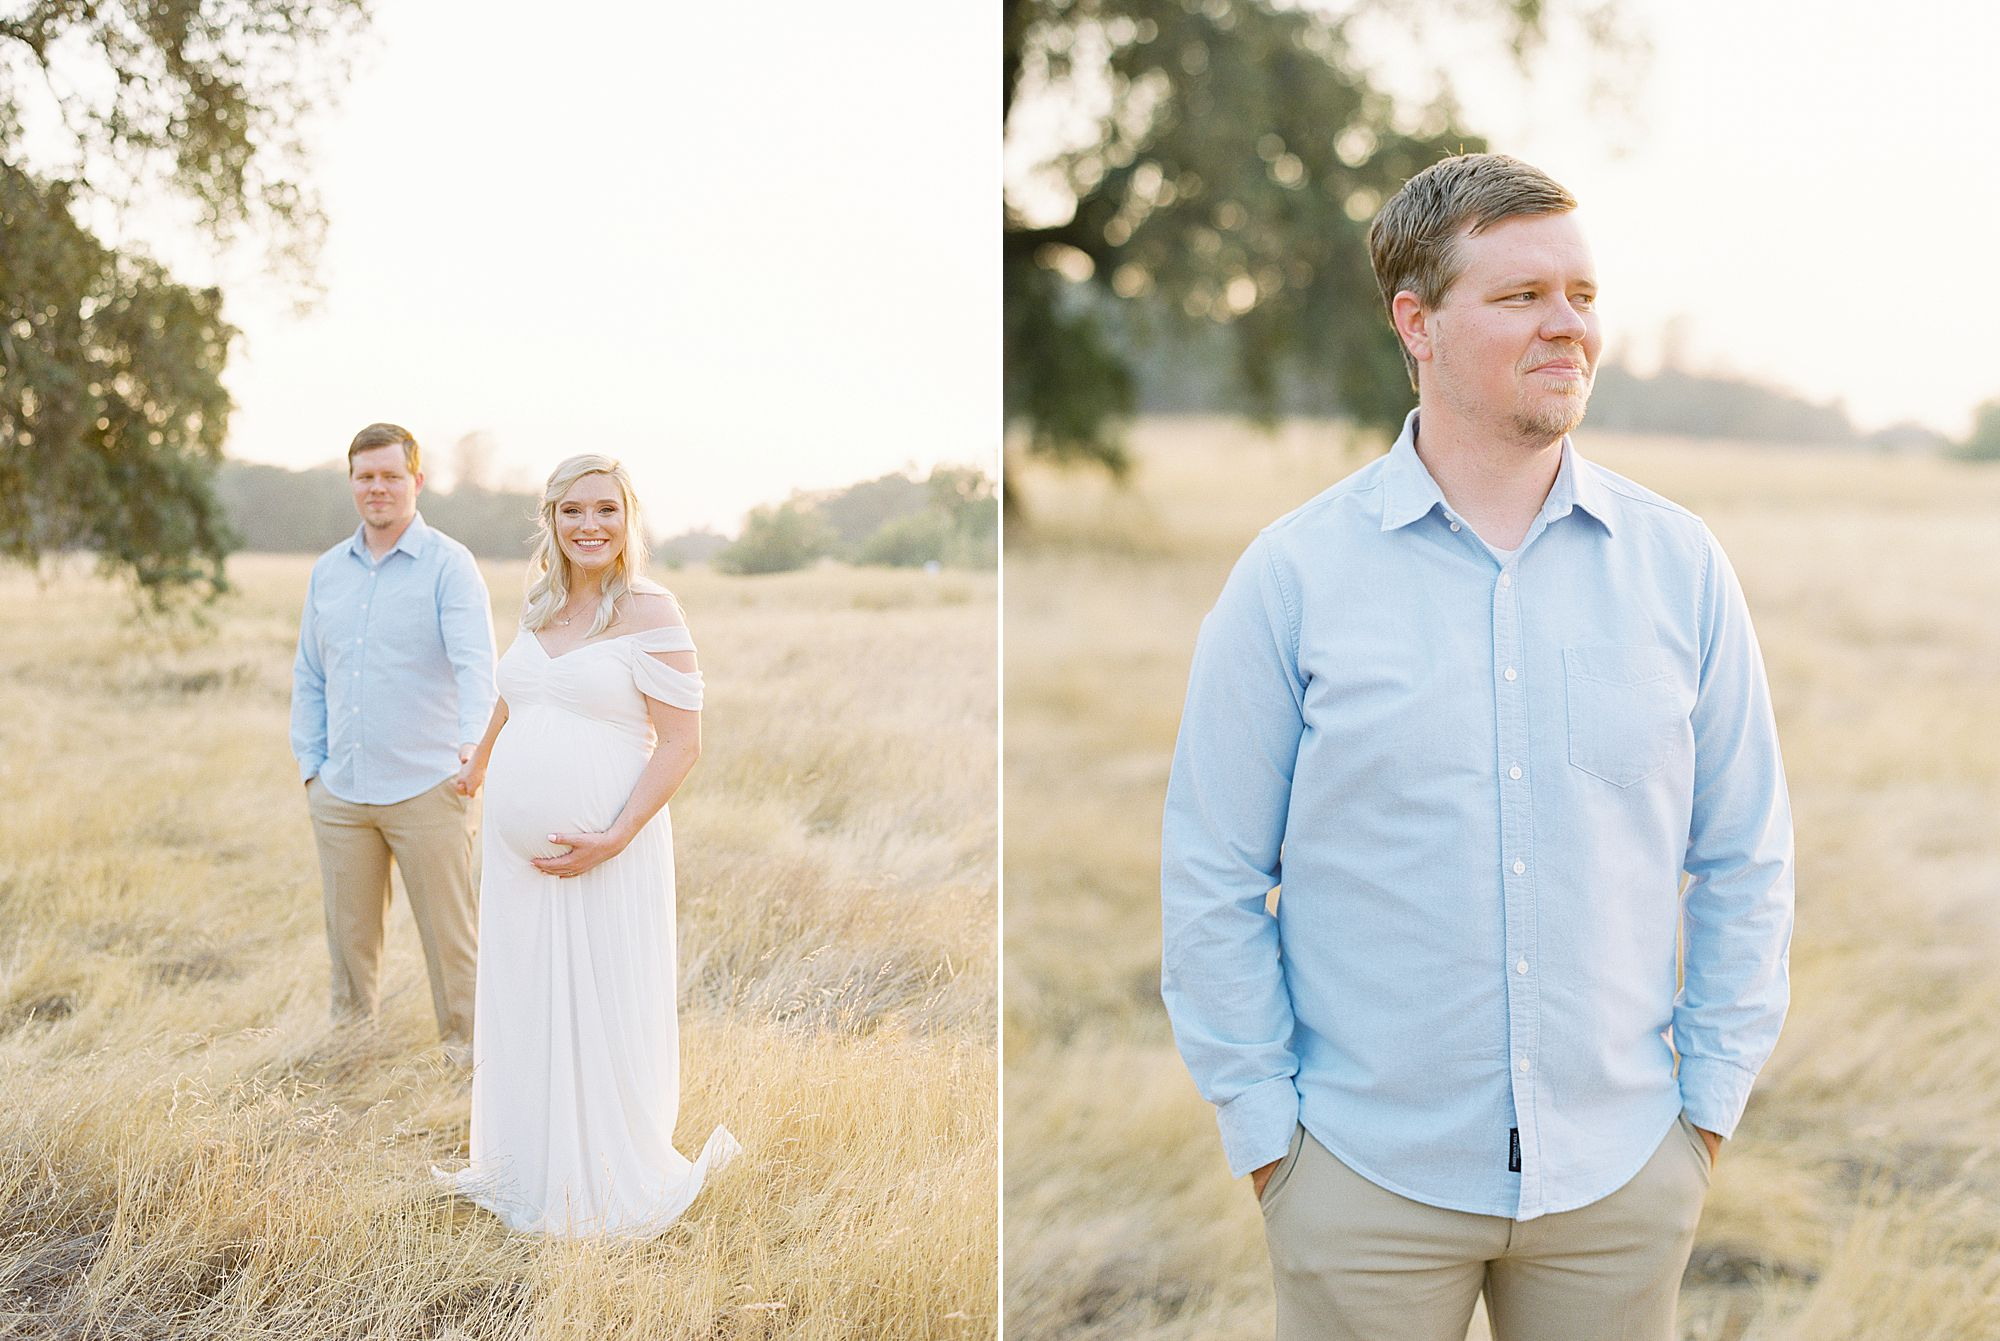 Golden Sacramento Maternity - Hannah and Connor - Ashley Baumgartner - Sacramento Maternity Photographer_0008.jpg